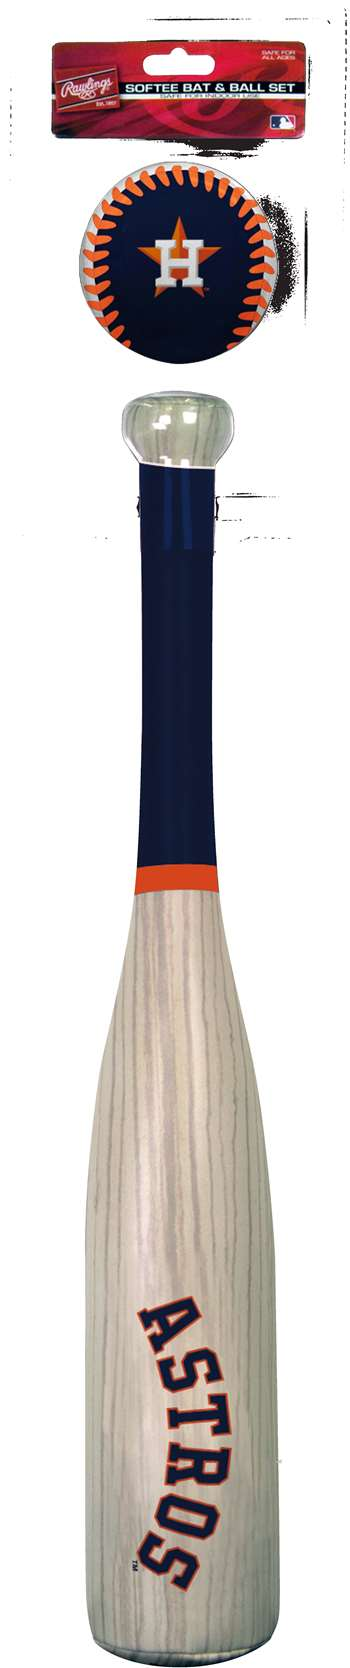 Houston Astros Grand Slam Softee Baseball Bat and Ball